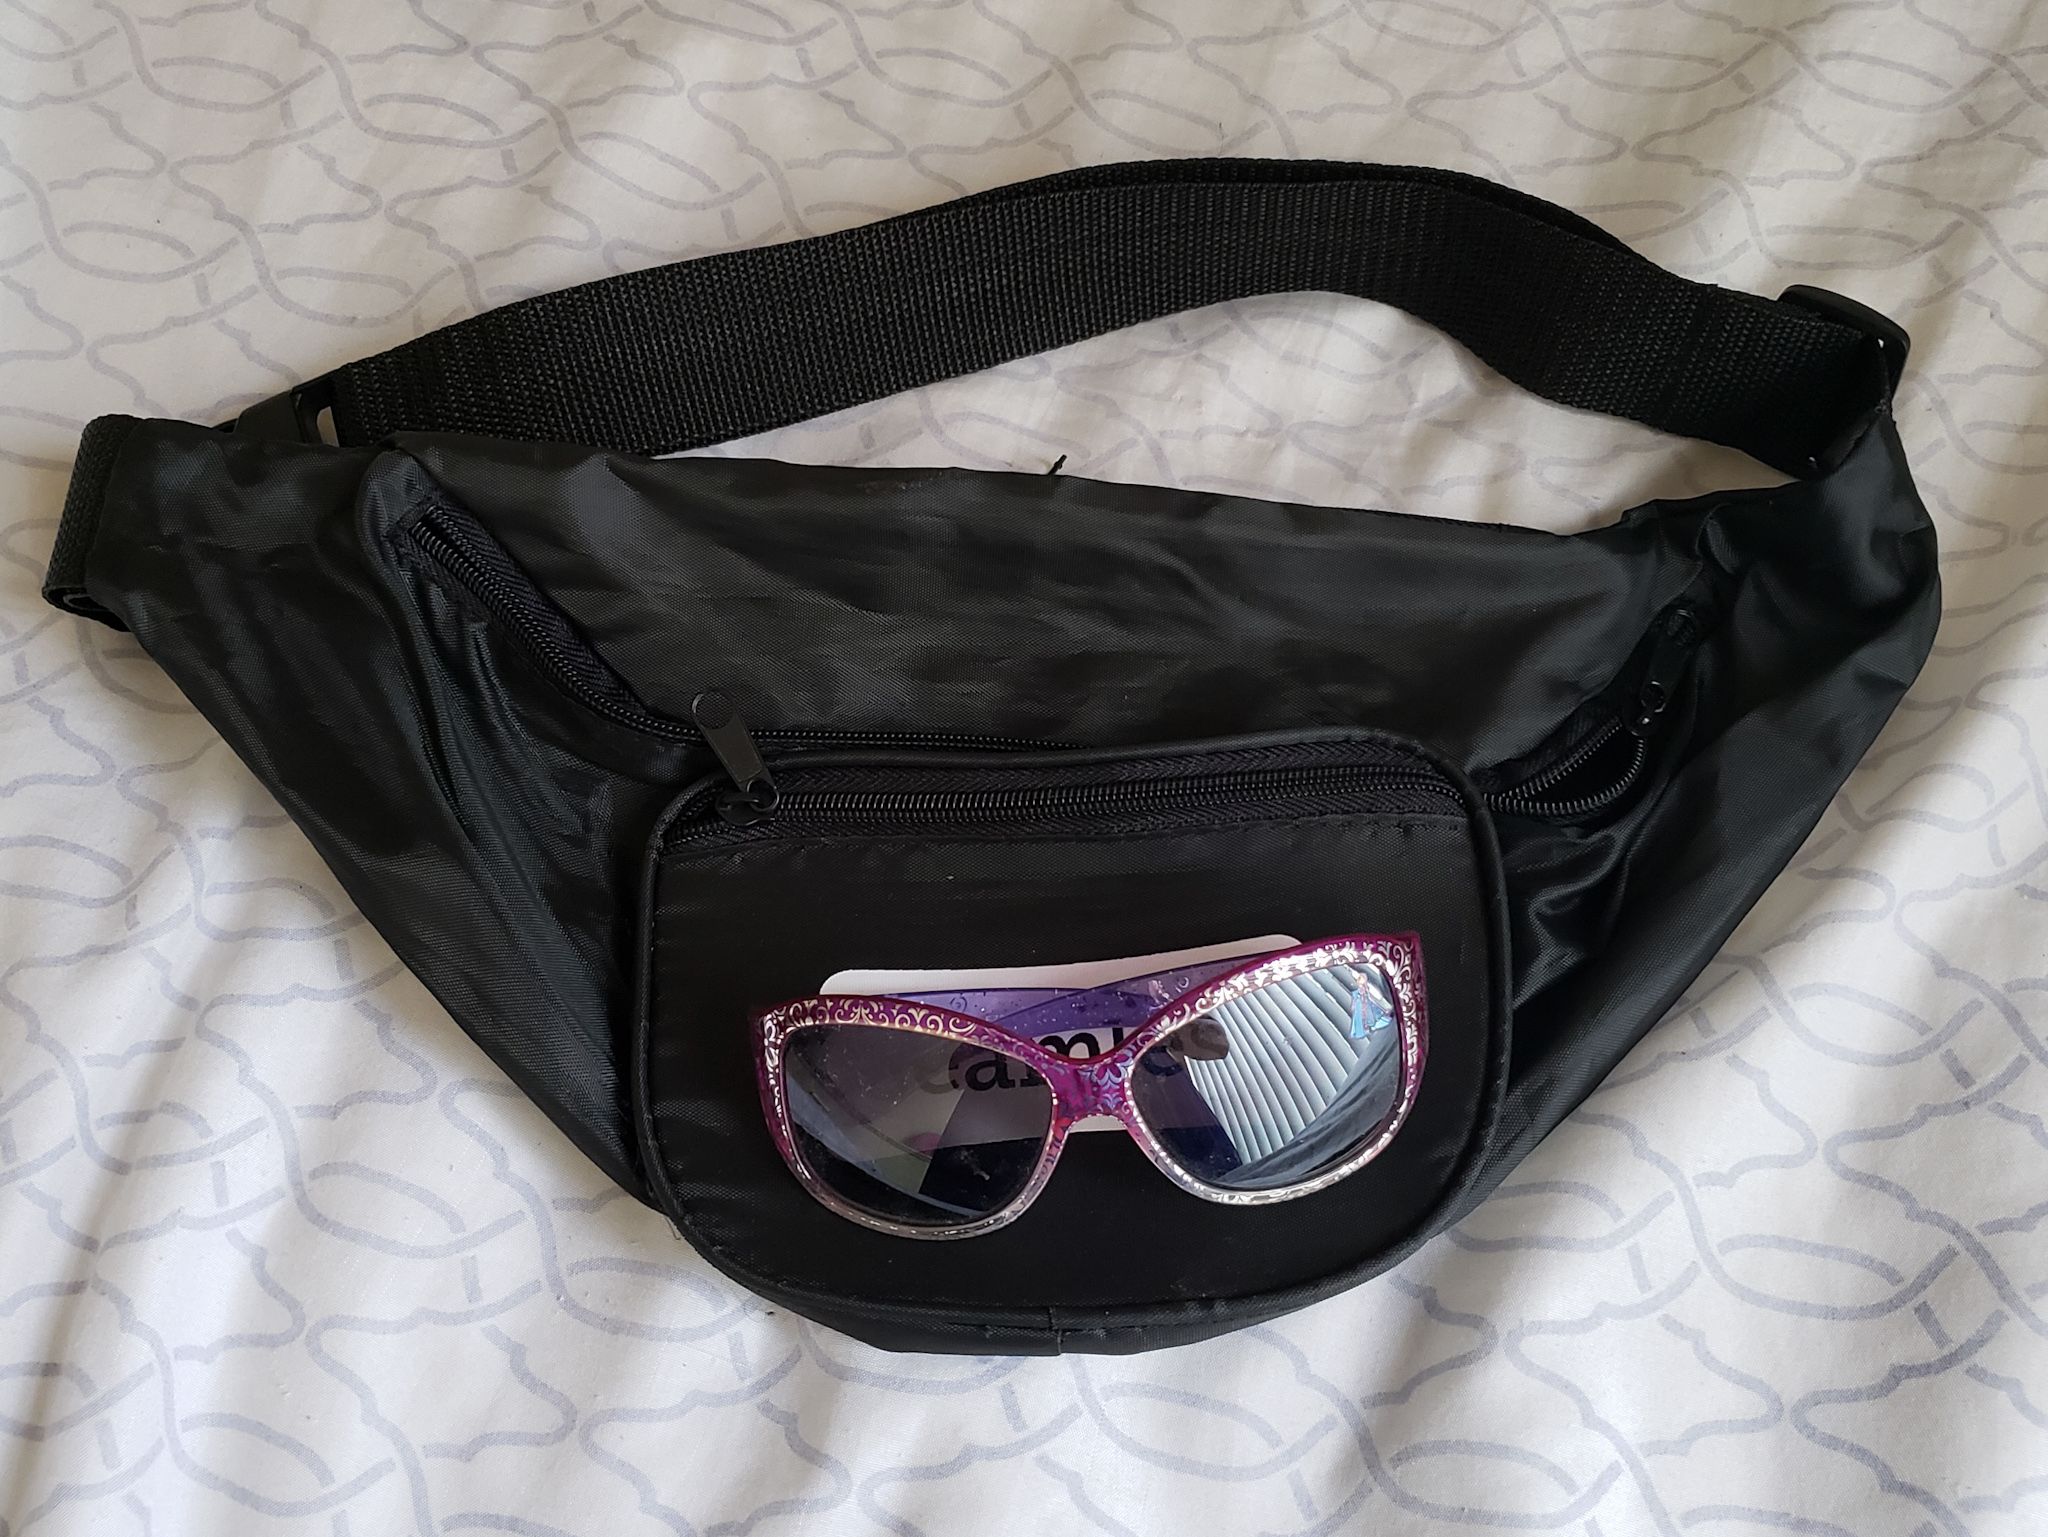 My fanny pack and a cute pair of sunglasses.